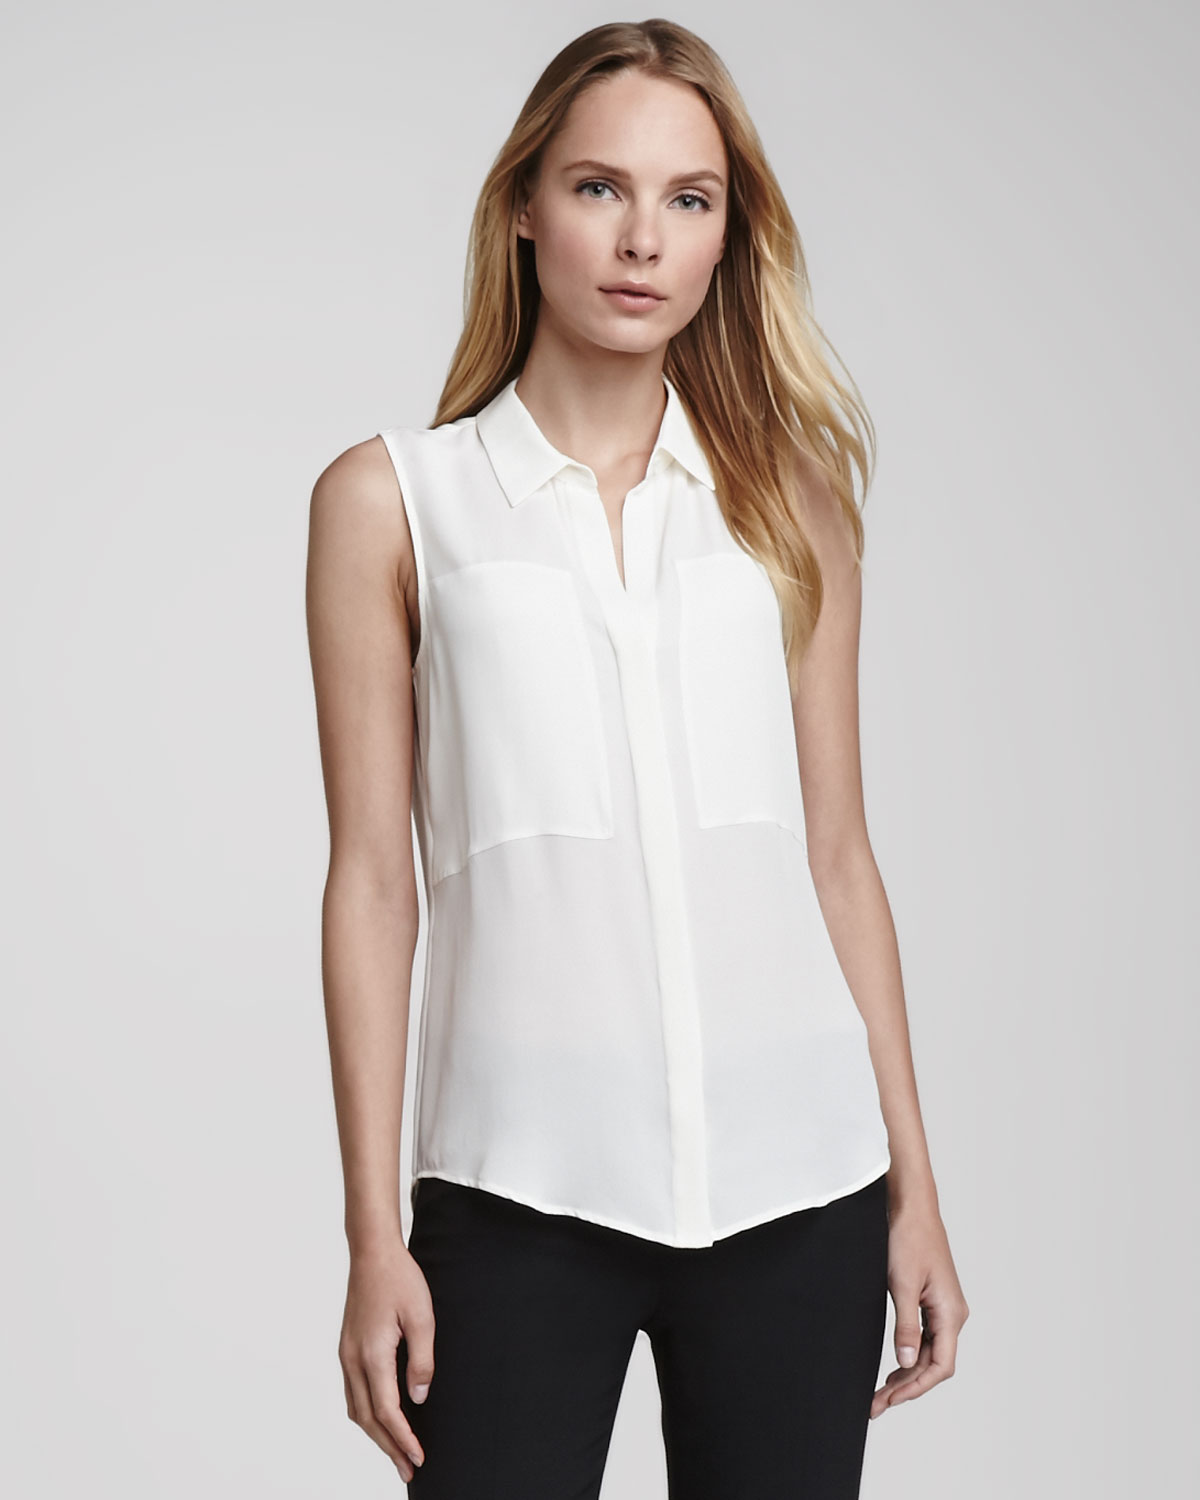 Shop for white sleeveless blouse online at Target. Free shipping on purchases over $35 and save 5% every day with your Target REDcard.